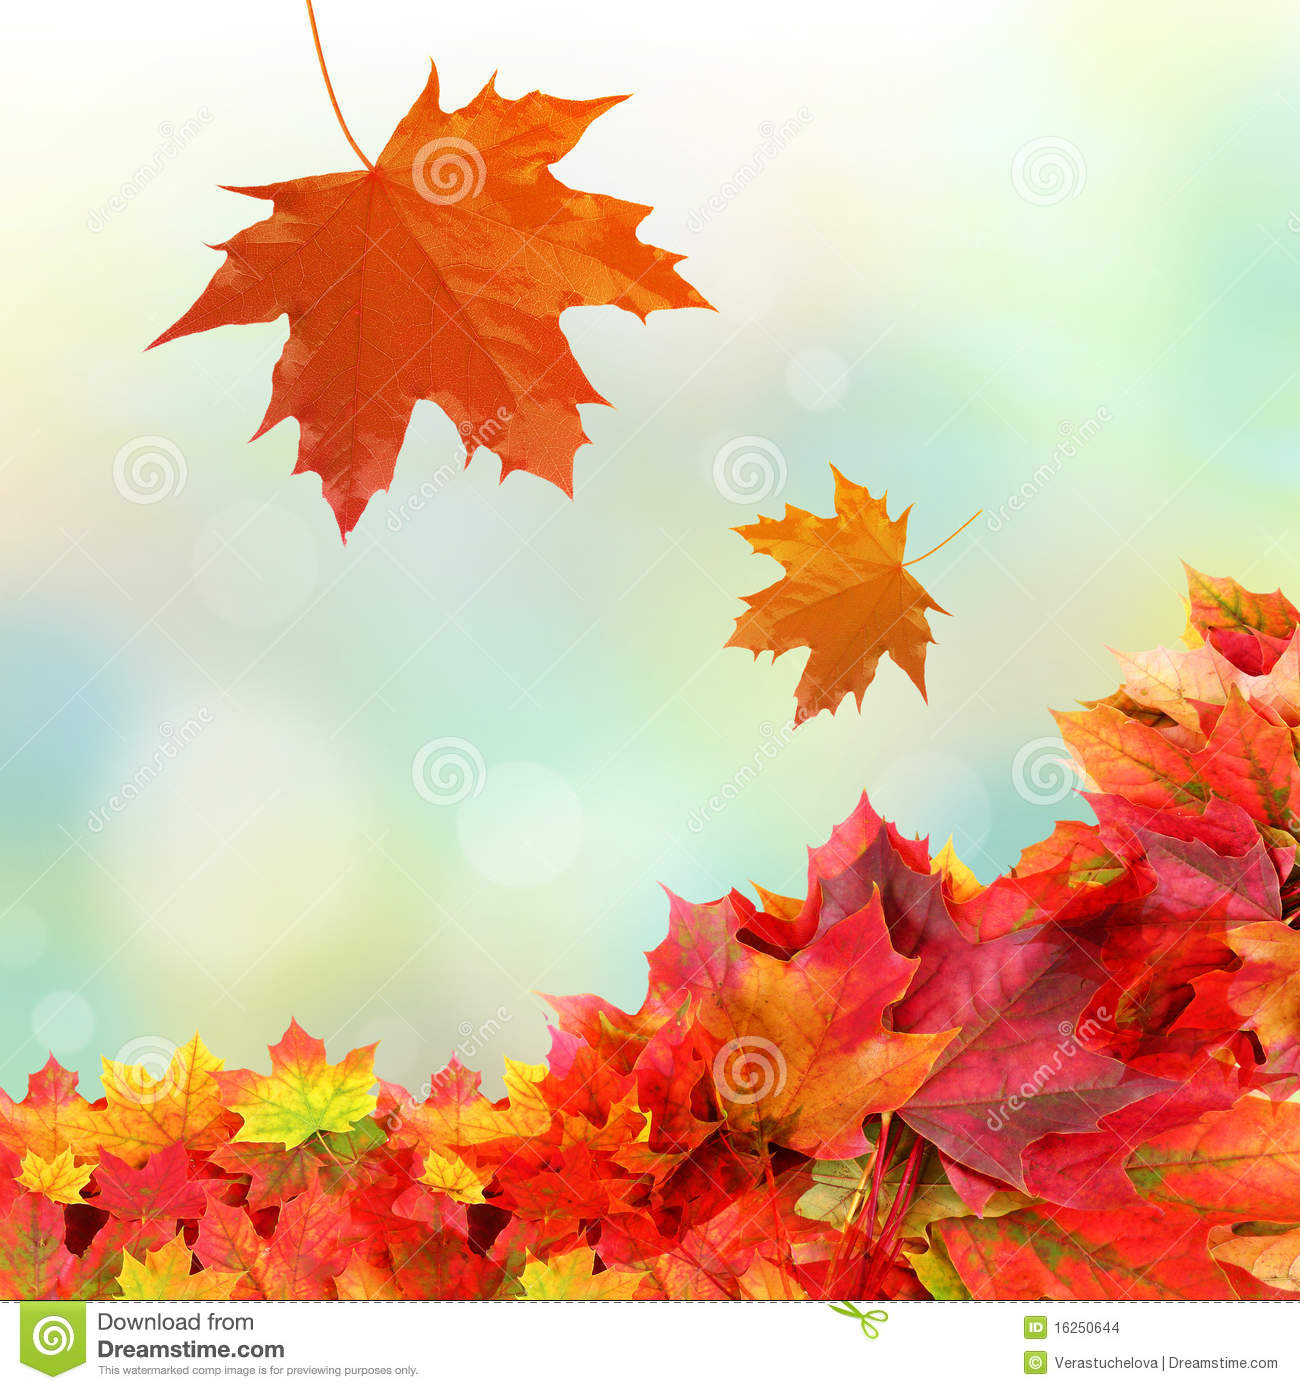 Falling fall leaves stock photo. Image of frame, bright - 16250644